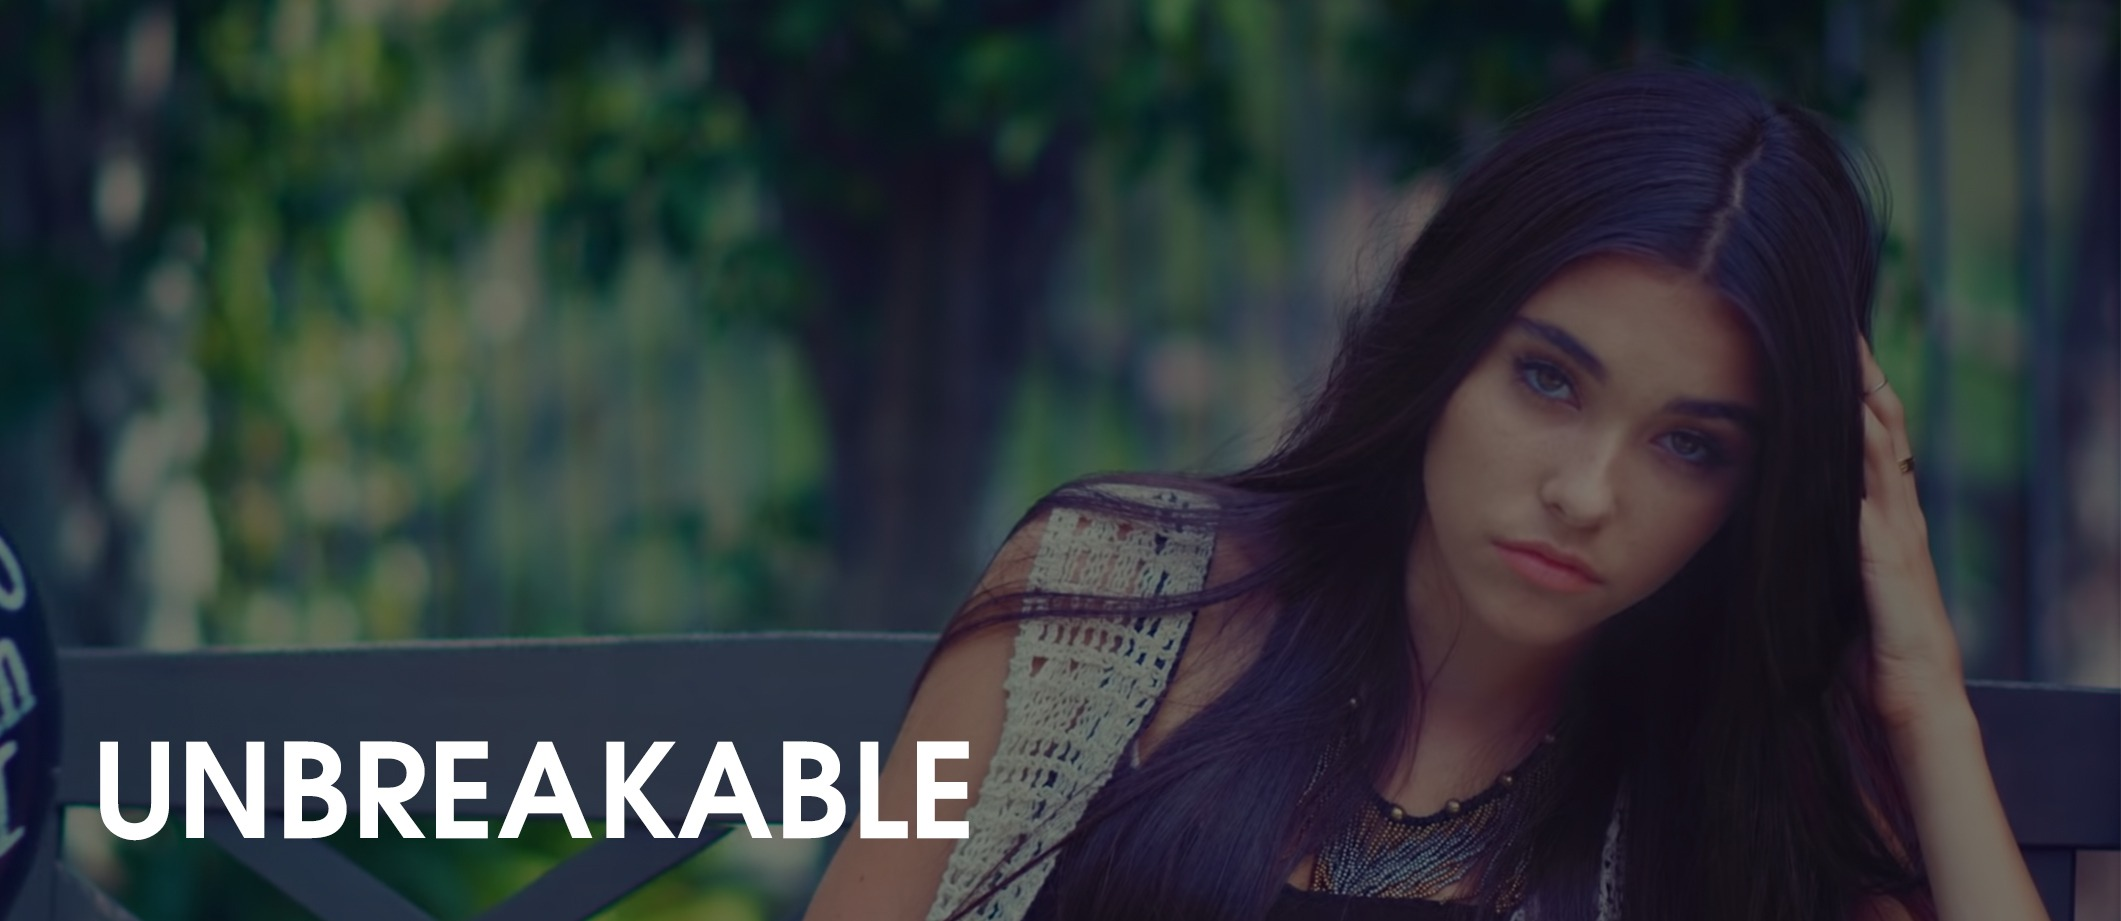 MB Website Video and Music-Unbreakable